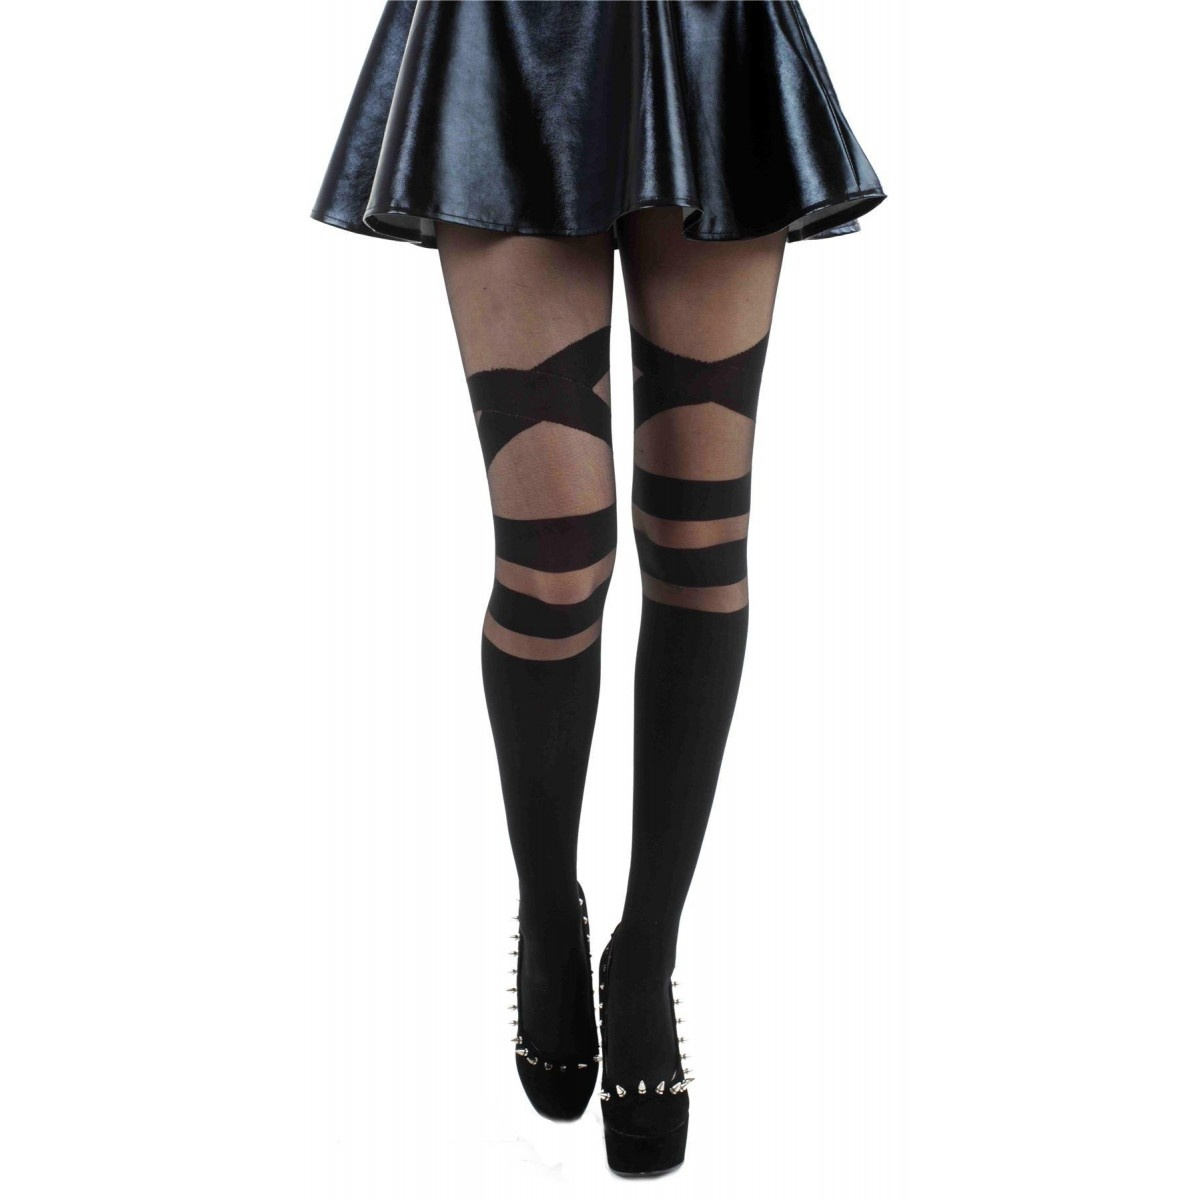 V Strap Sheer Tights - SALE